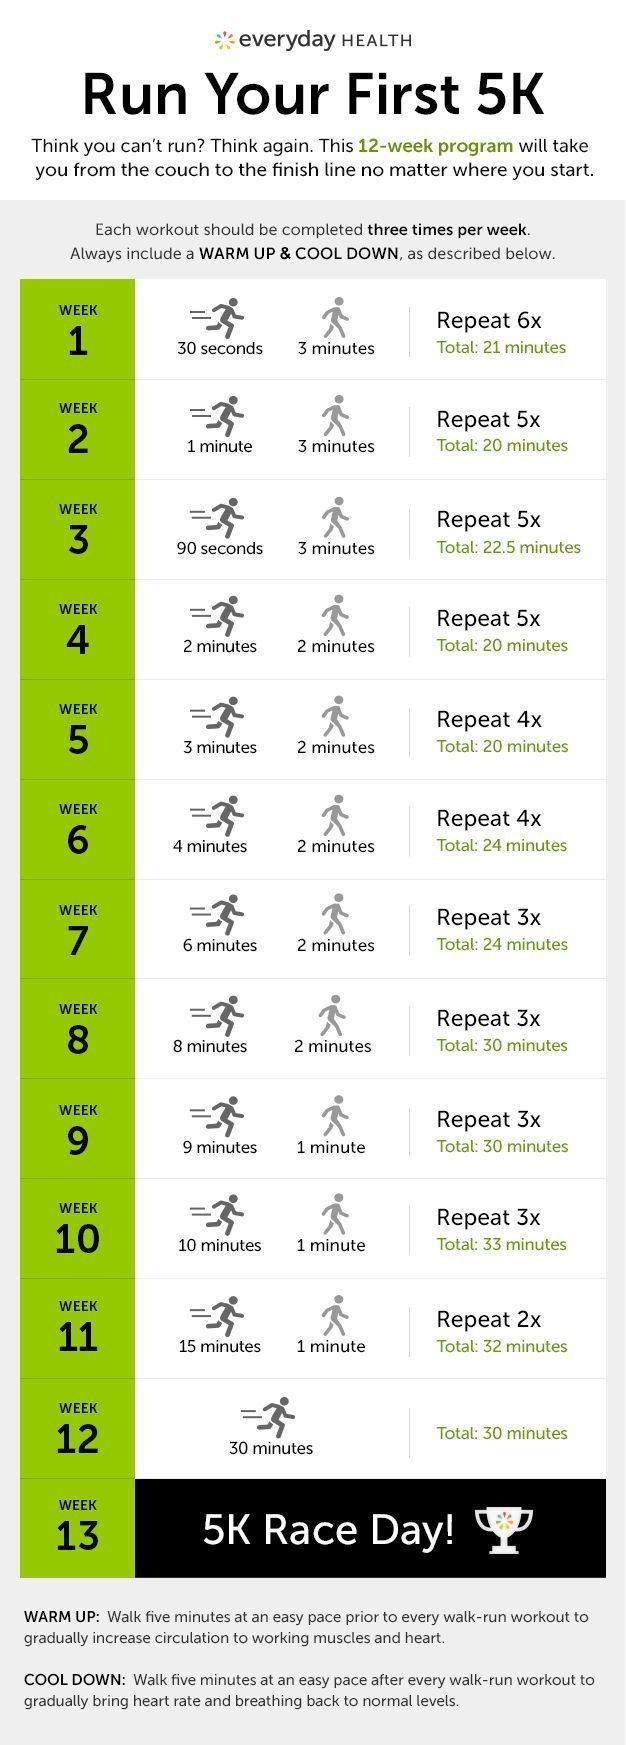 Train For a 5K Race in 12 Weeks